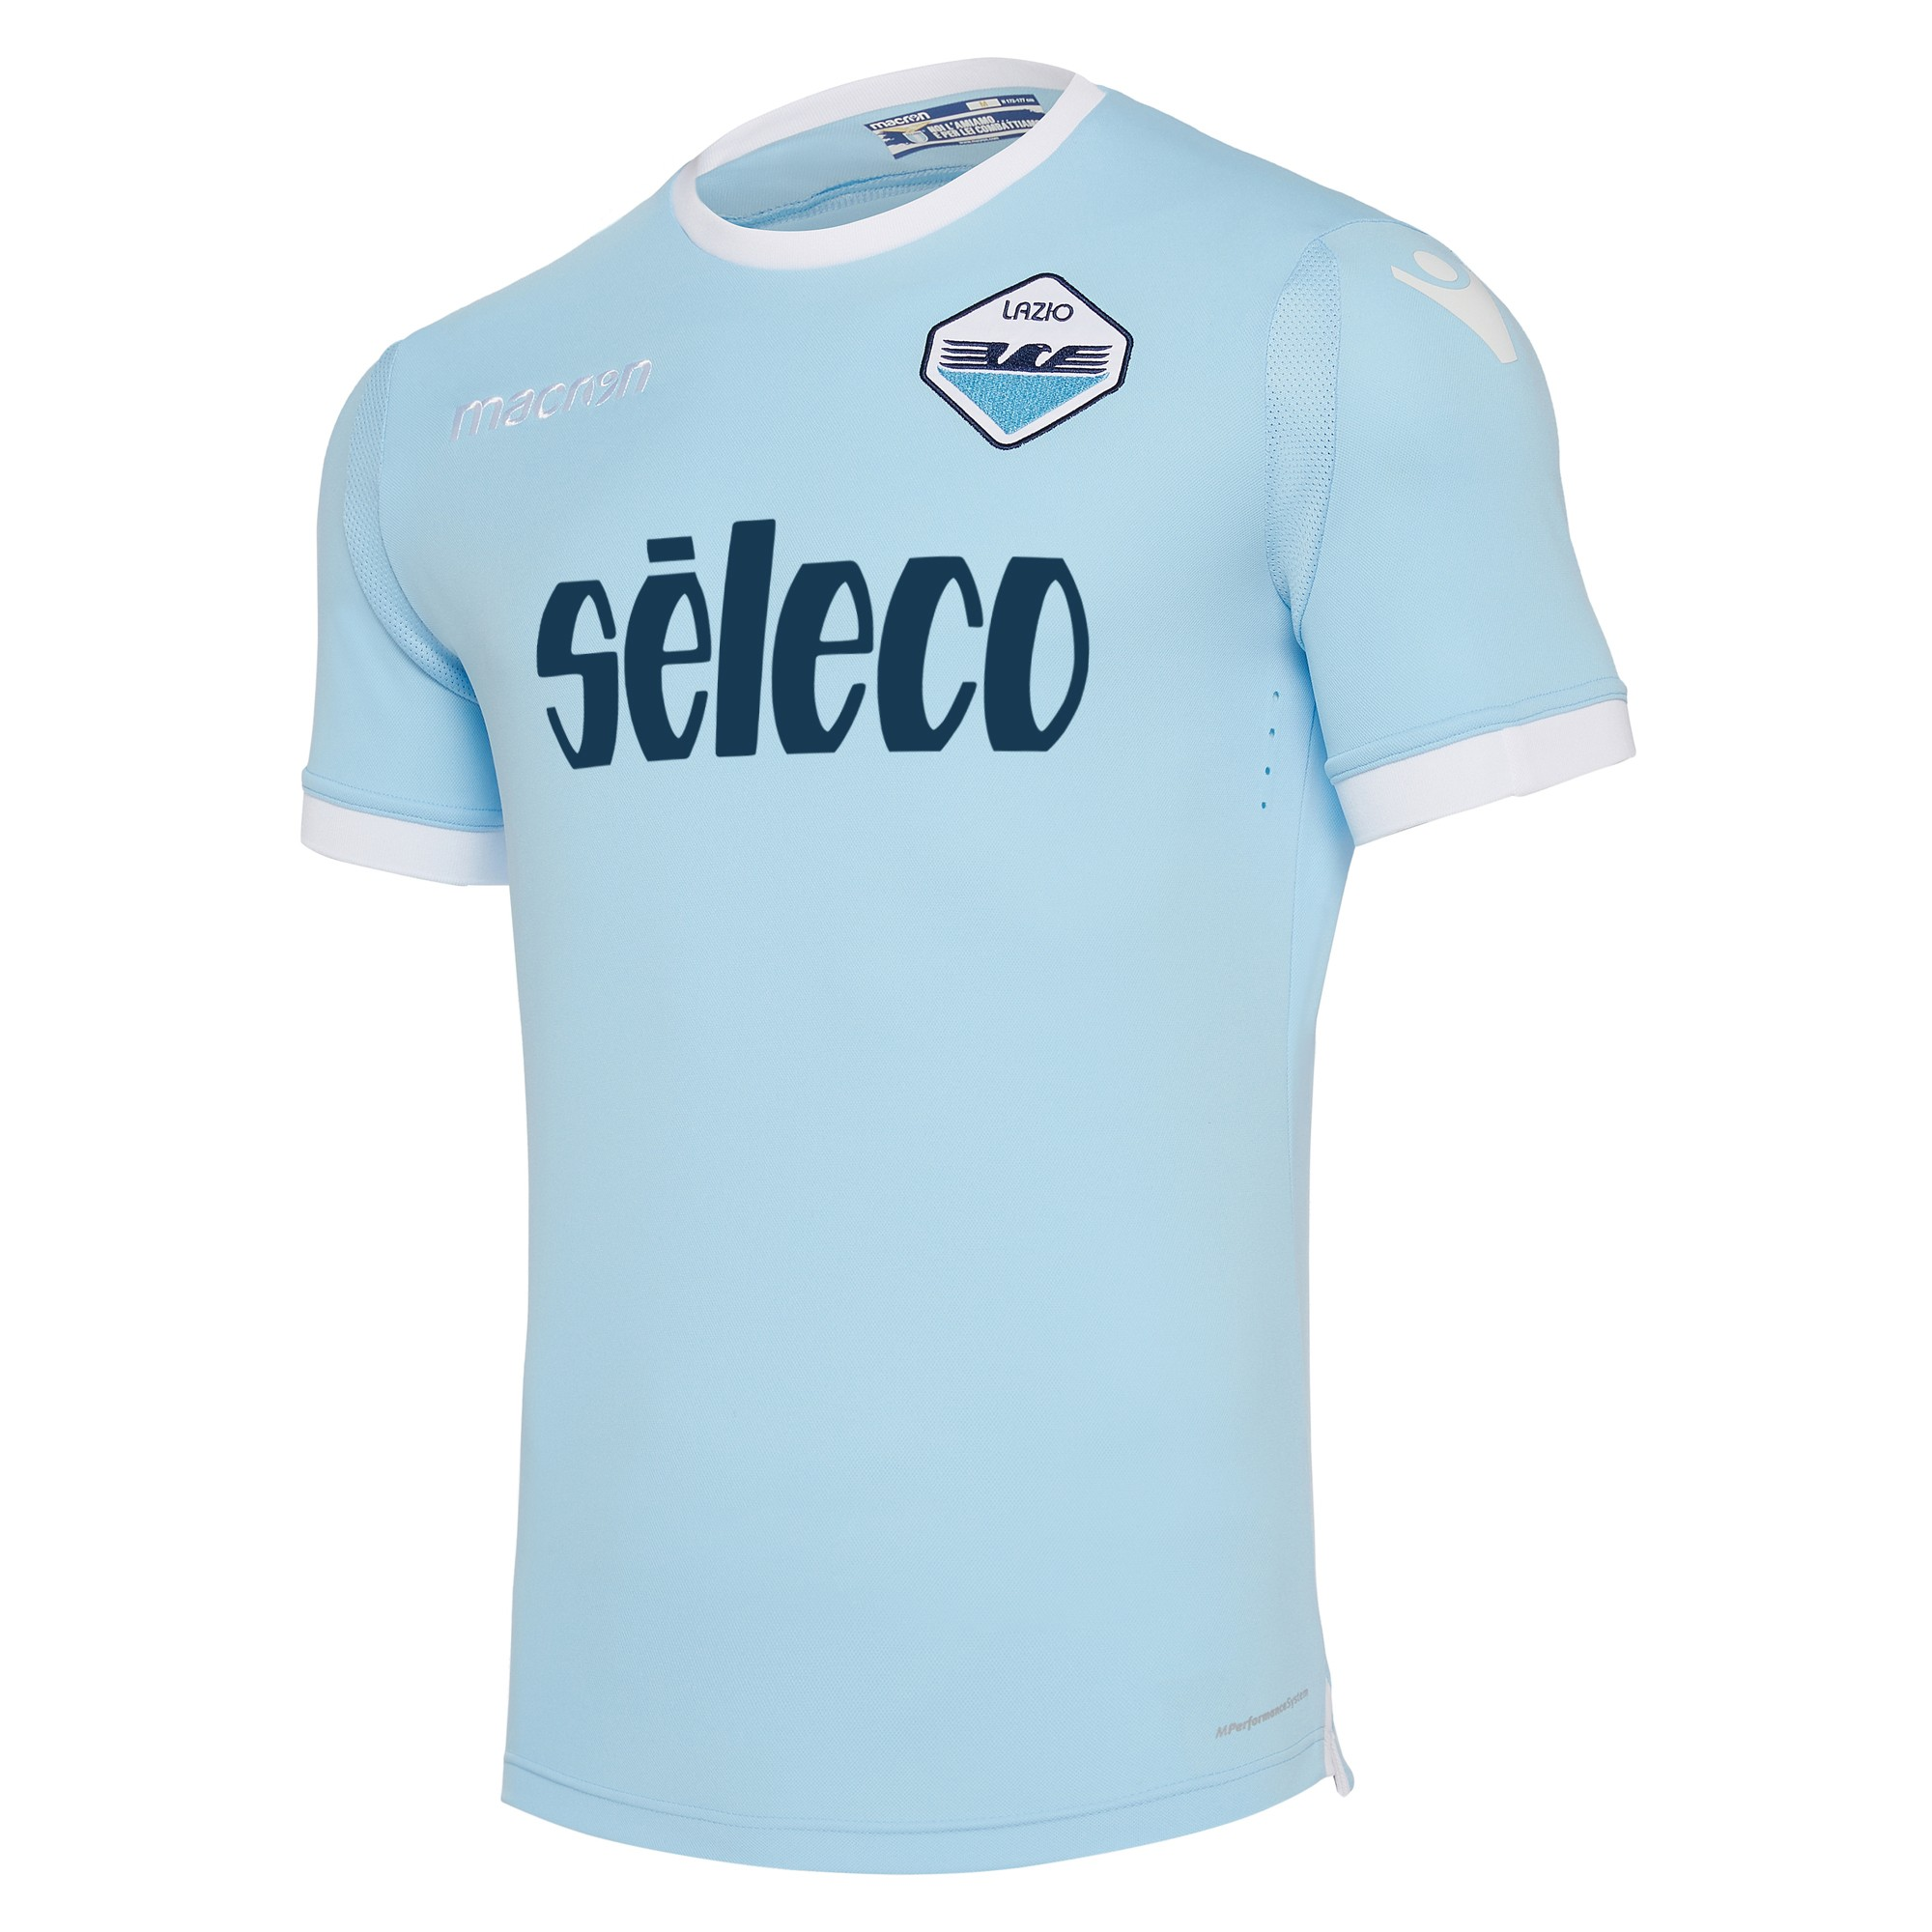 Maison En Kit Bois: Lazio 17/18 Macron Home Kit